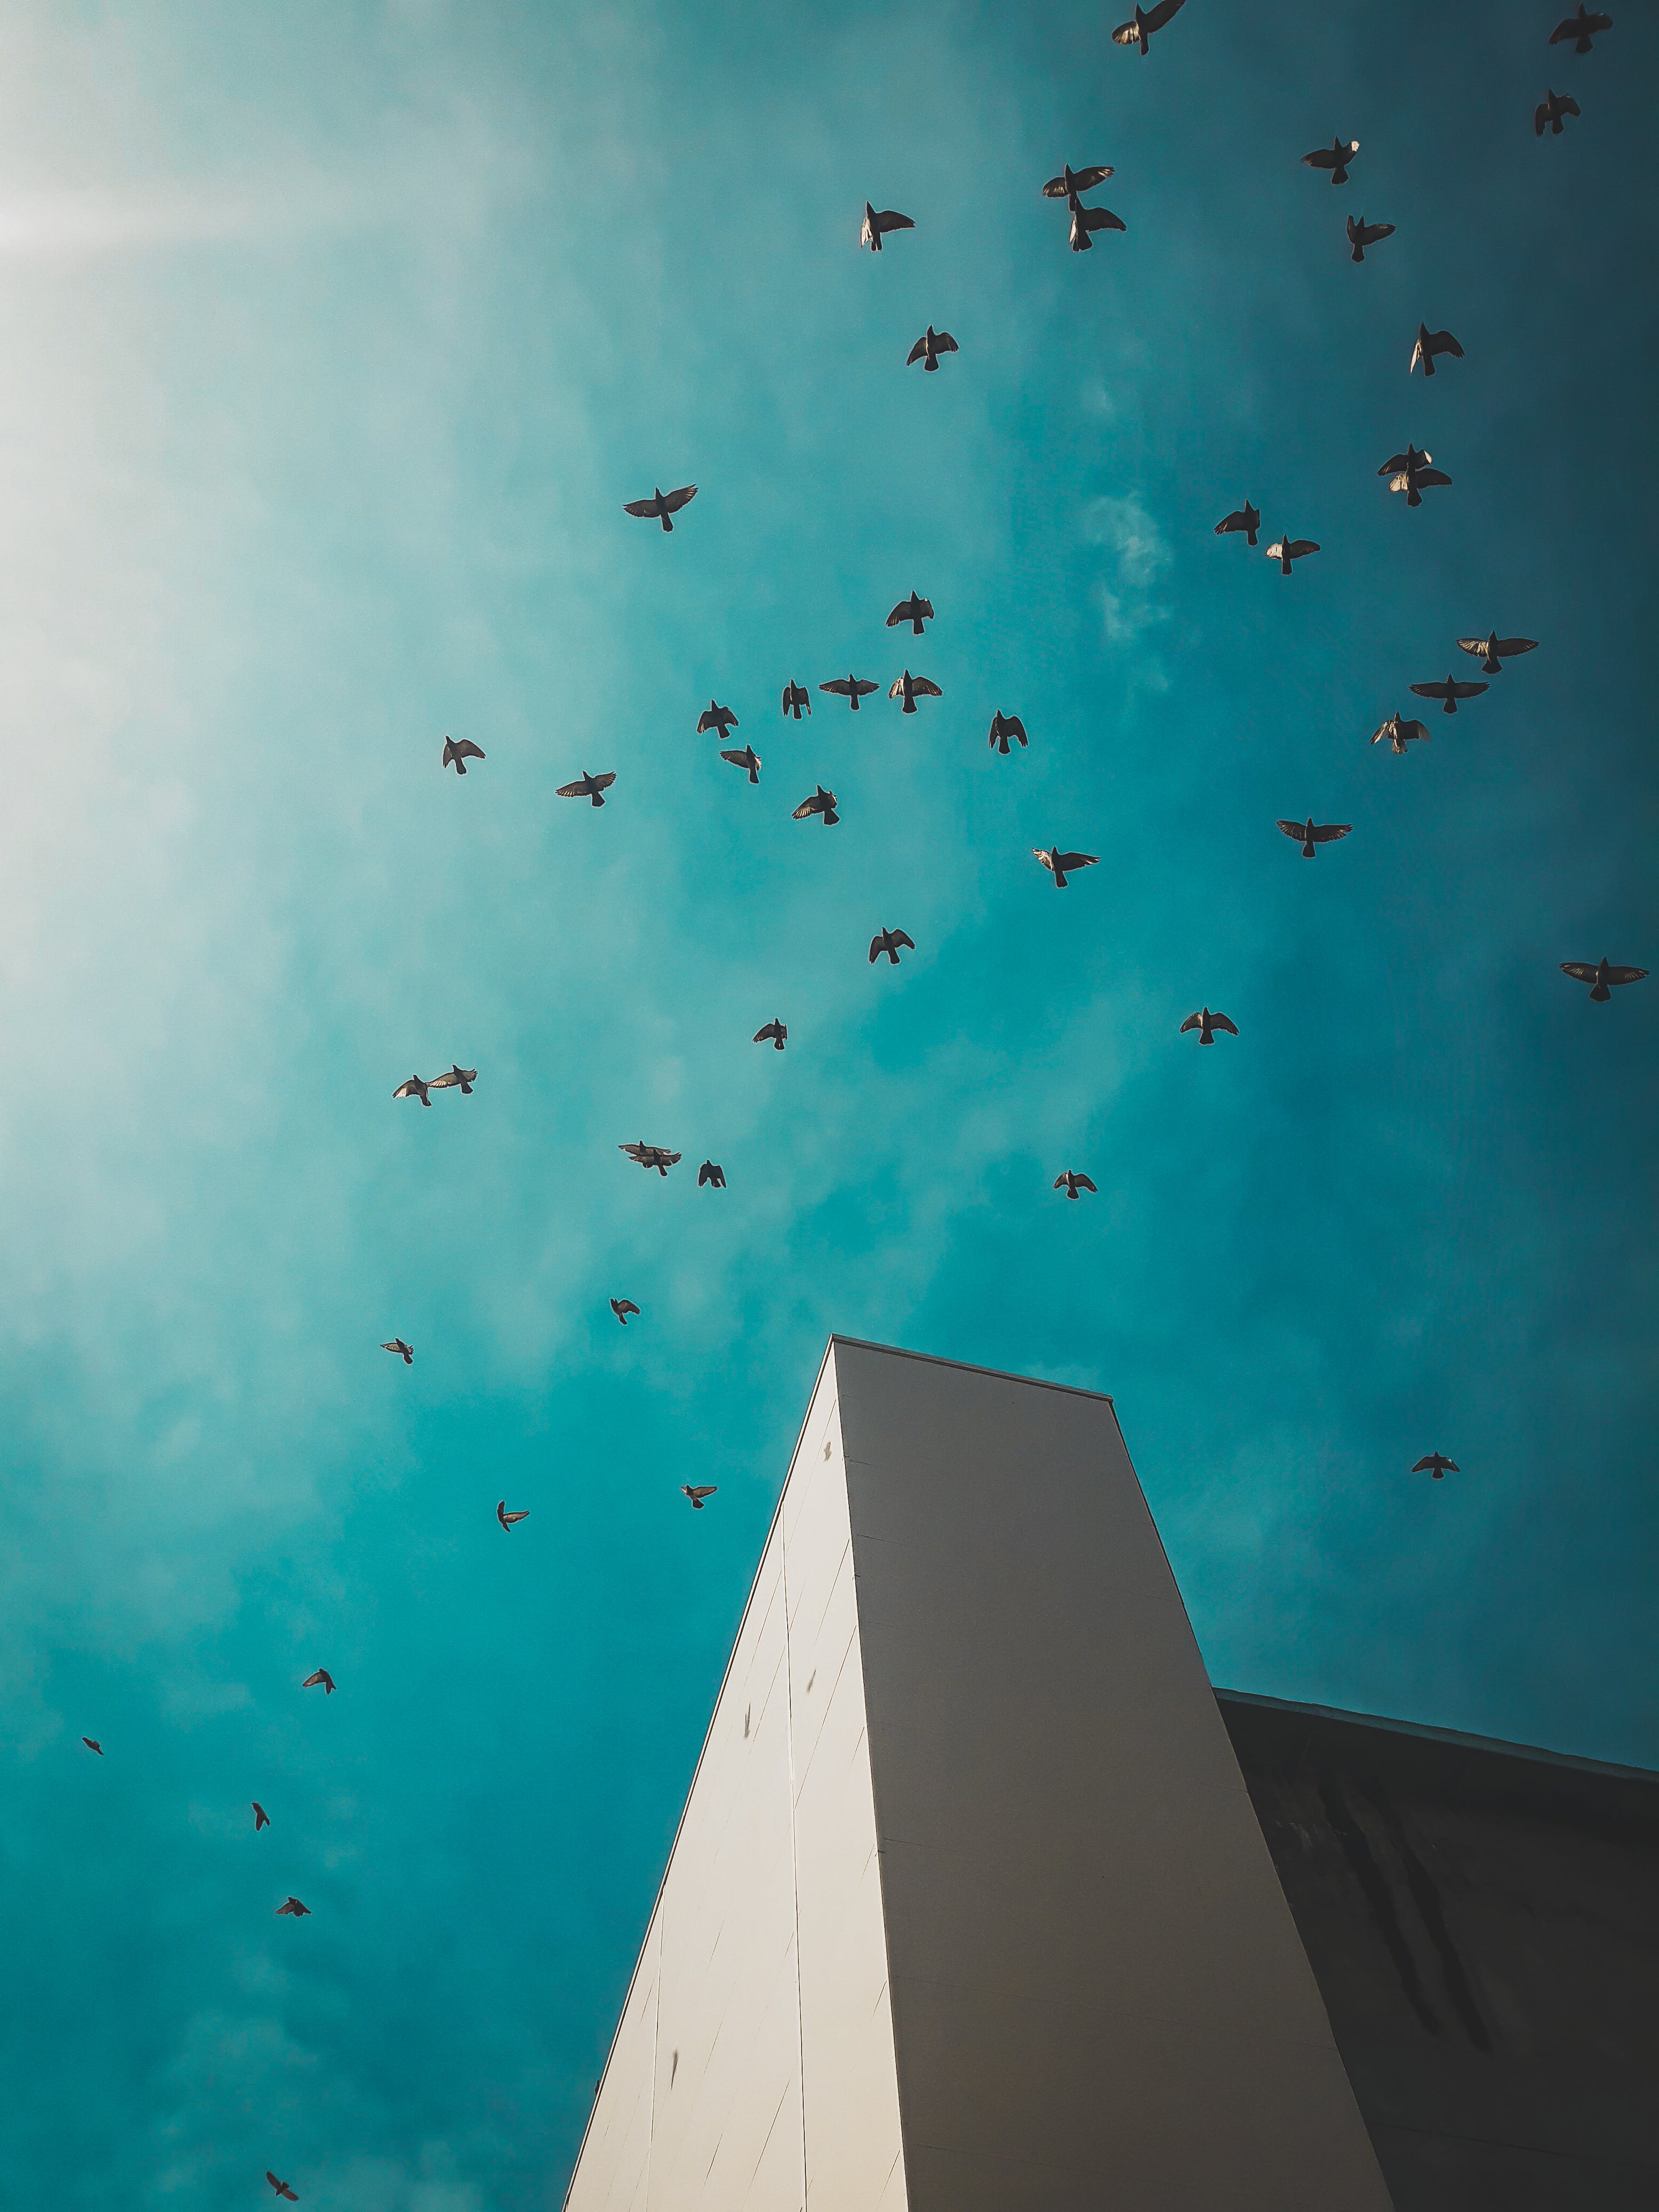 Worm's-eye View Photography of Flying Birds